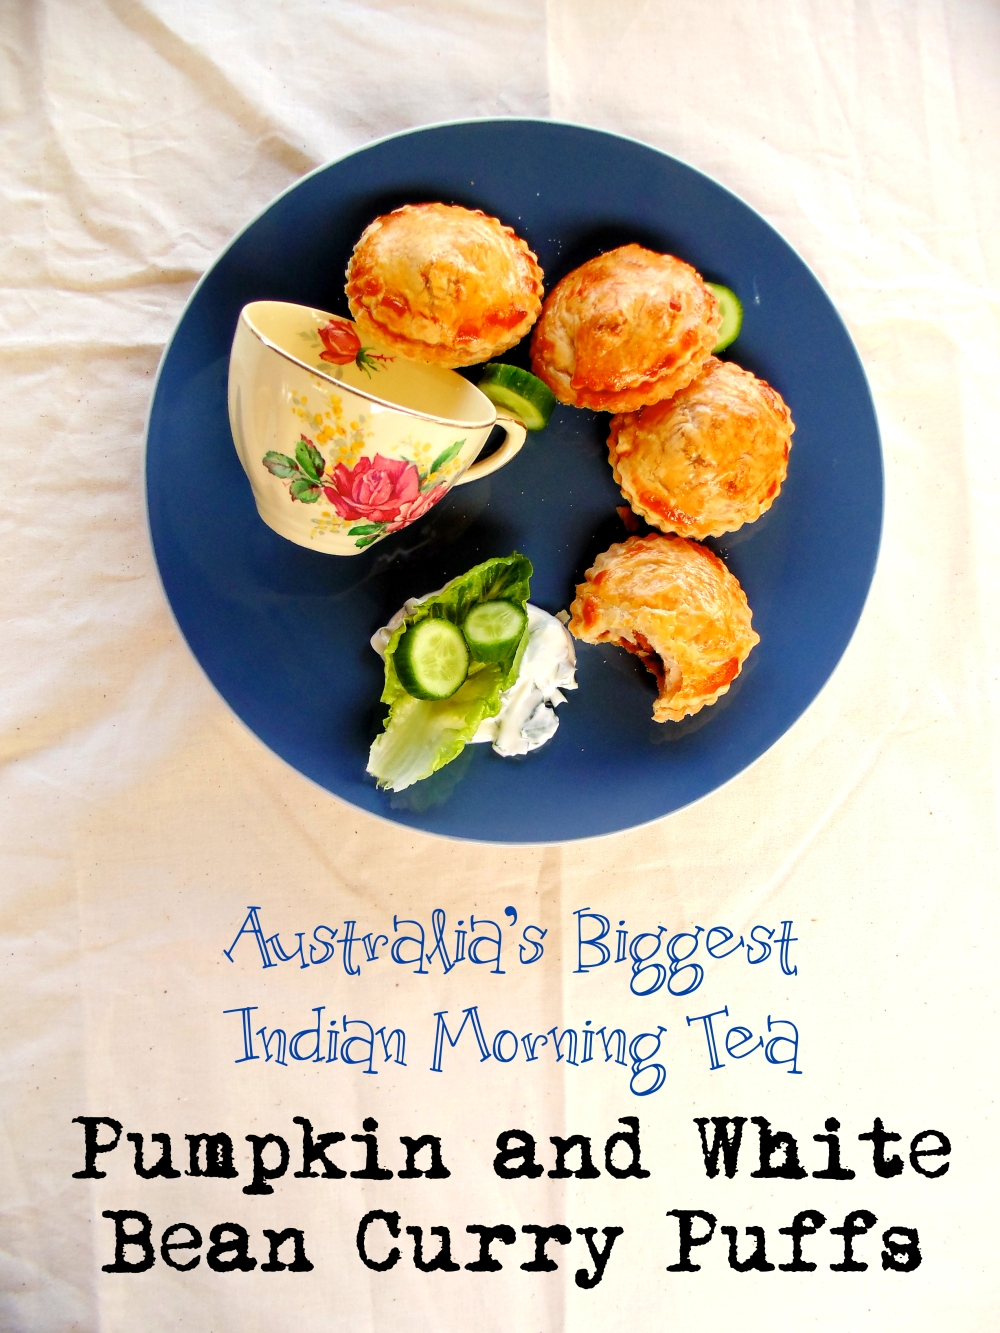 Australia's Biggest Indian Morning Tea: Pumpkin and White Bean Curry Puffs_Brendon D'Souza_Brendon The Smiling Chef_4